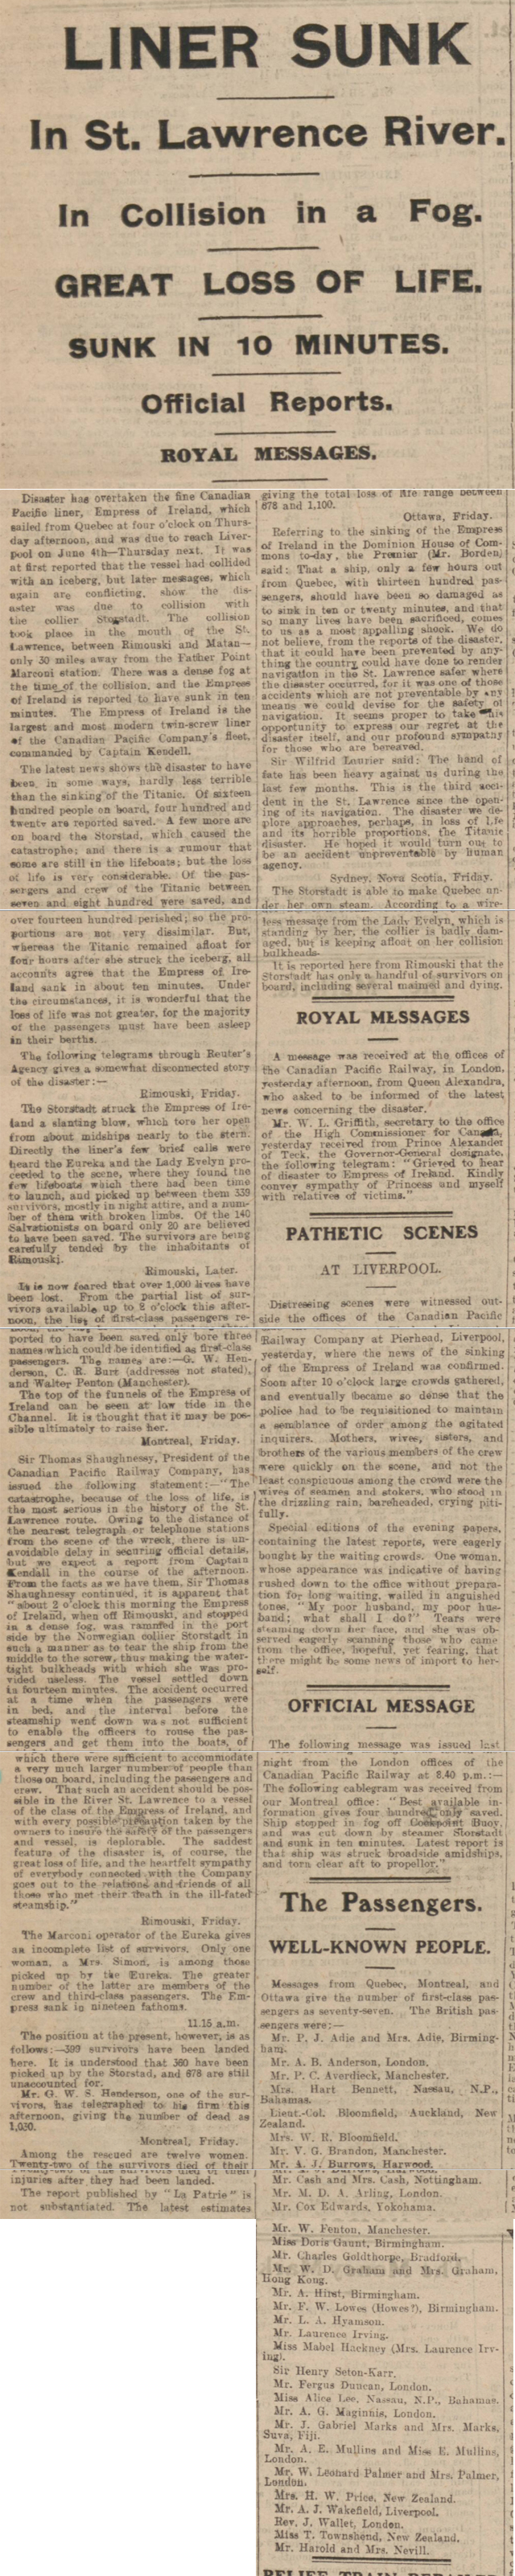 historical newspaper story about the sinking of the empress of ireland